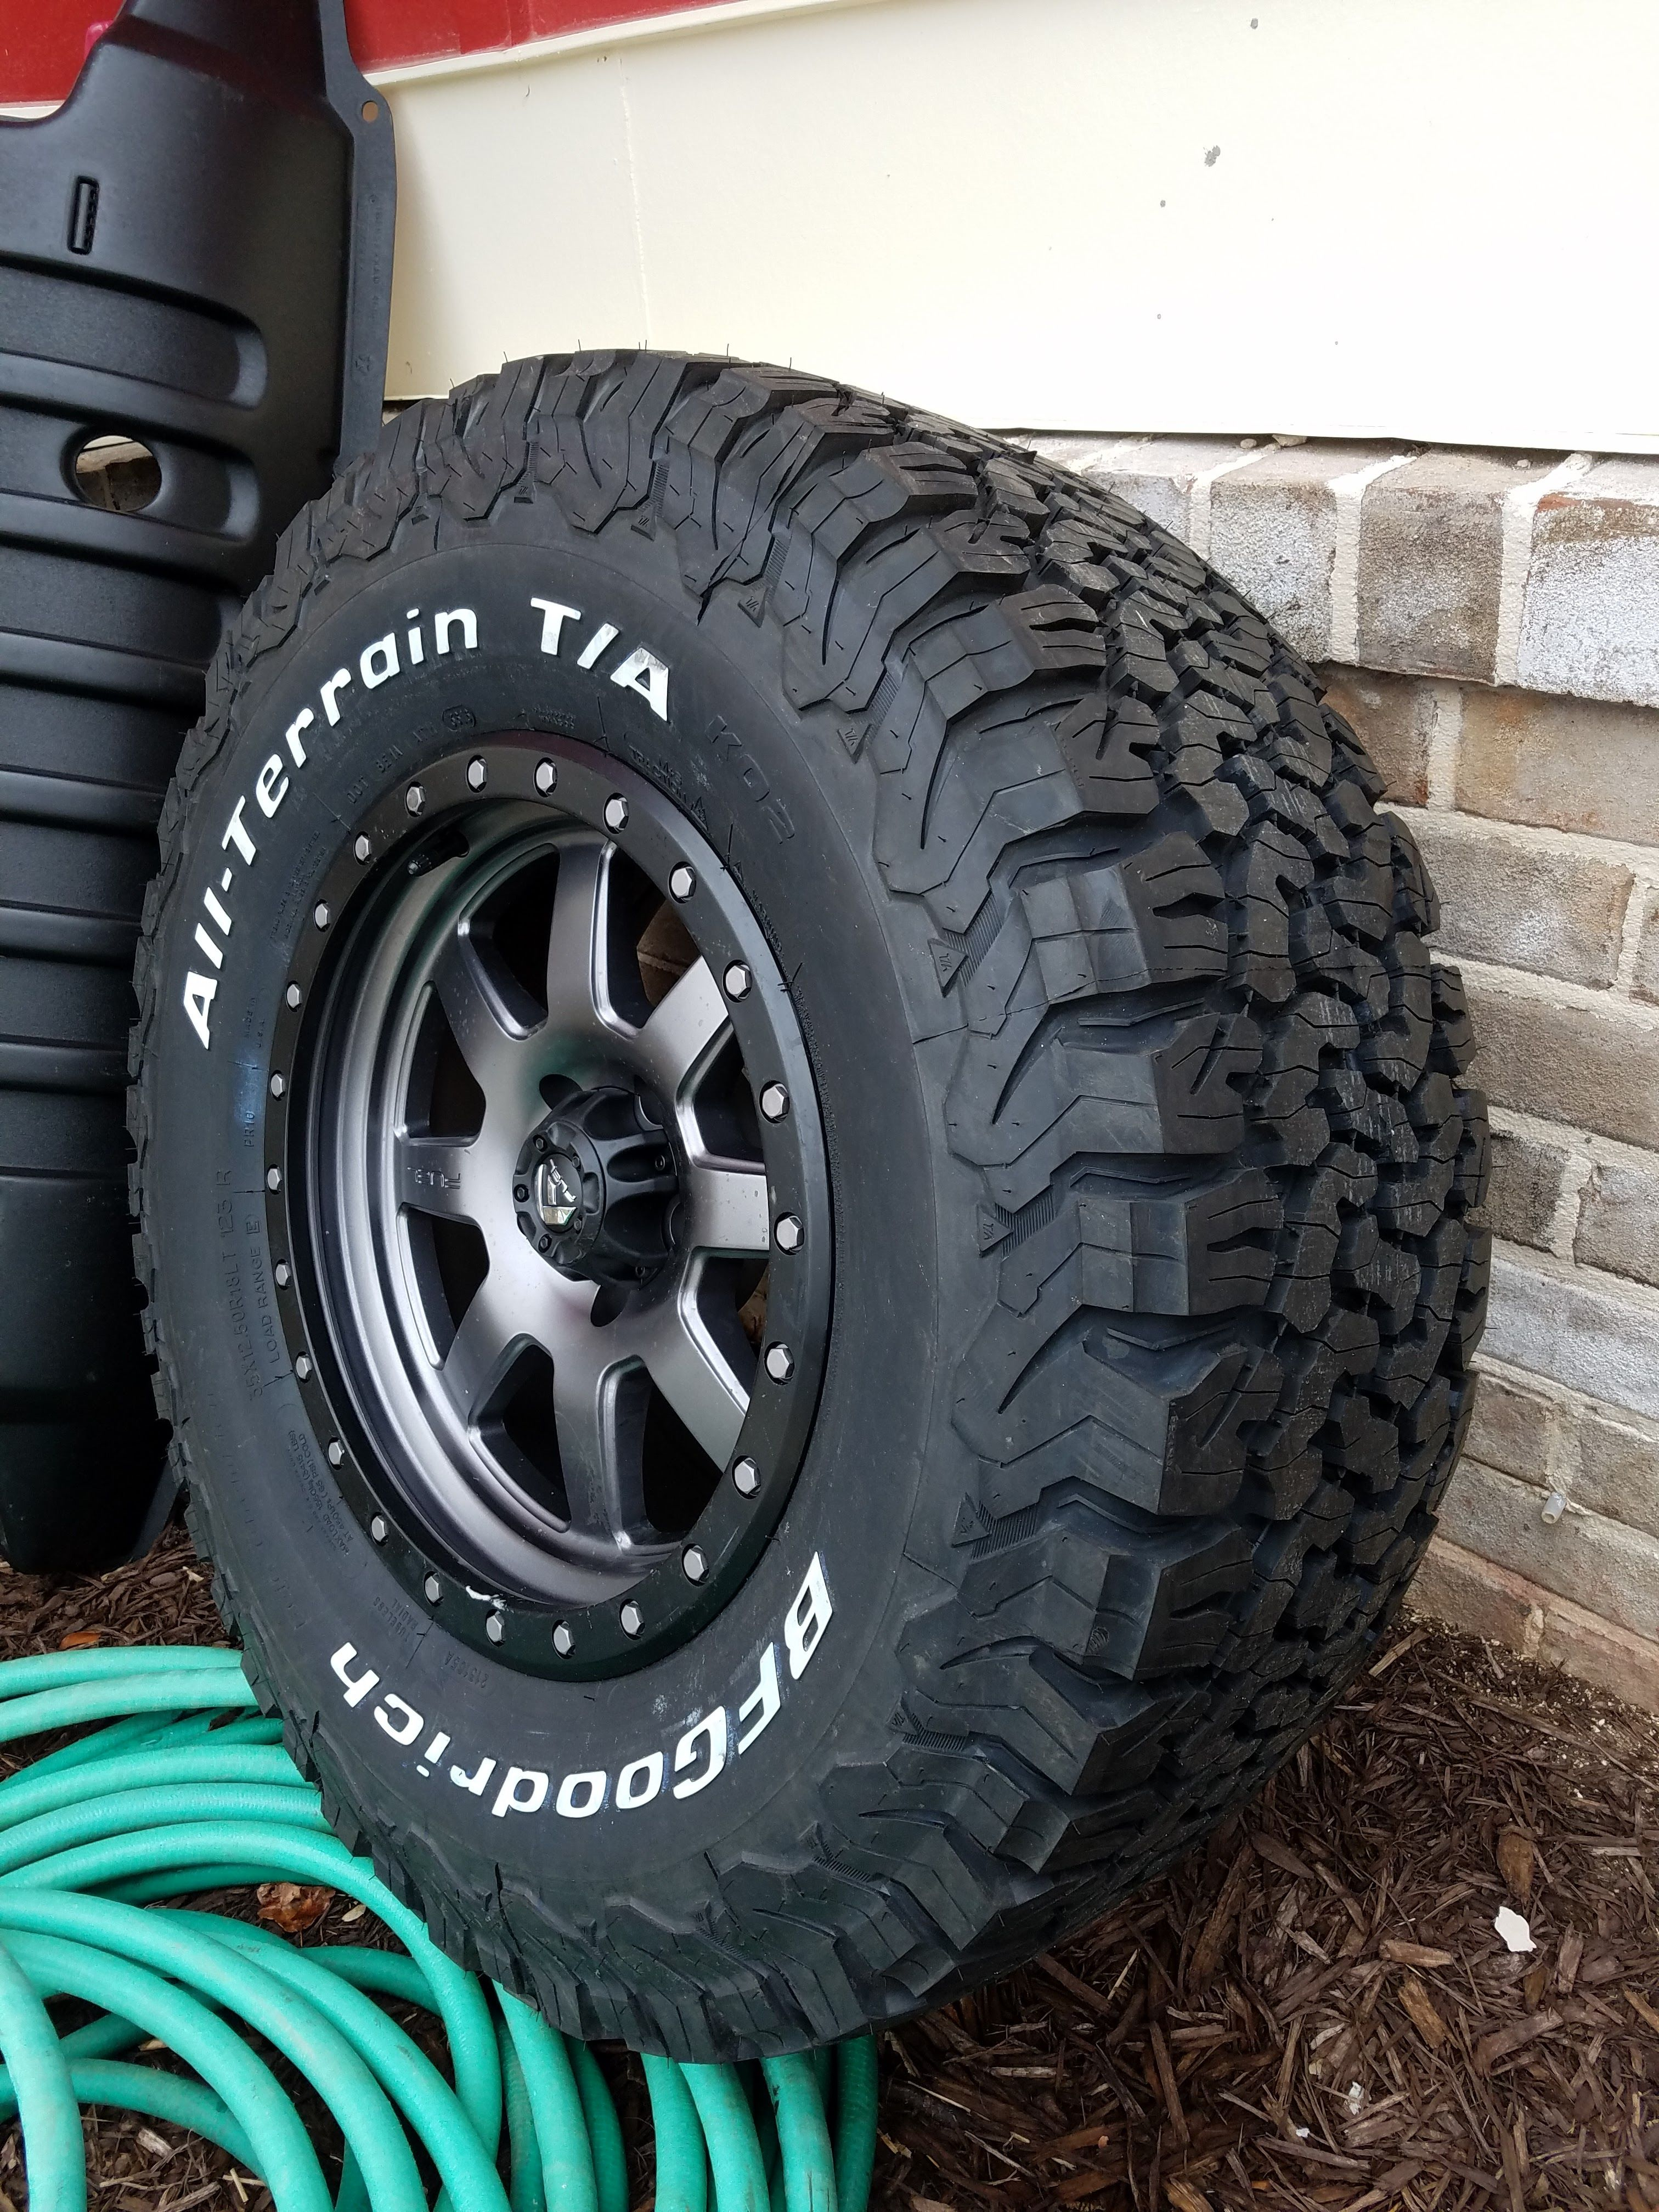 2016 Toyota Tacoma Lifted >> 18 x 9 Fuel Trophy Wheels, 35x12.50x18 BFG KO2 Tires | Jeep Board | Pinterest | Tired, Wheels ...